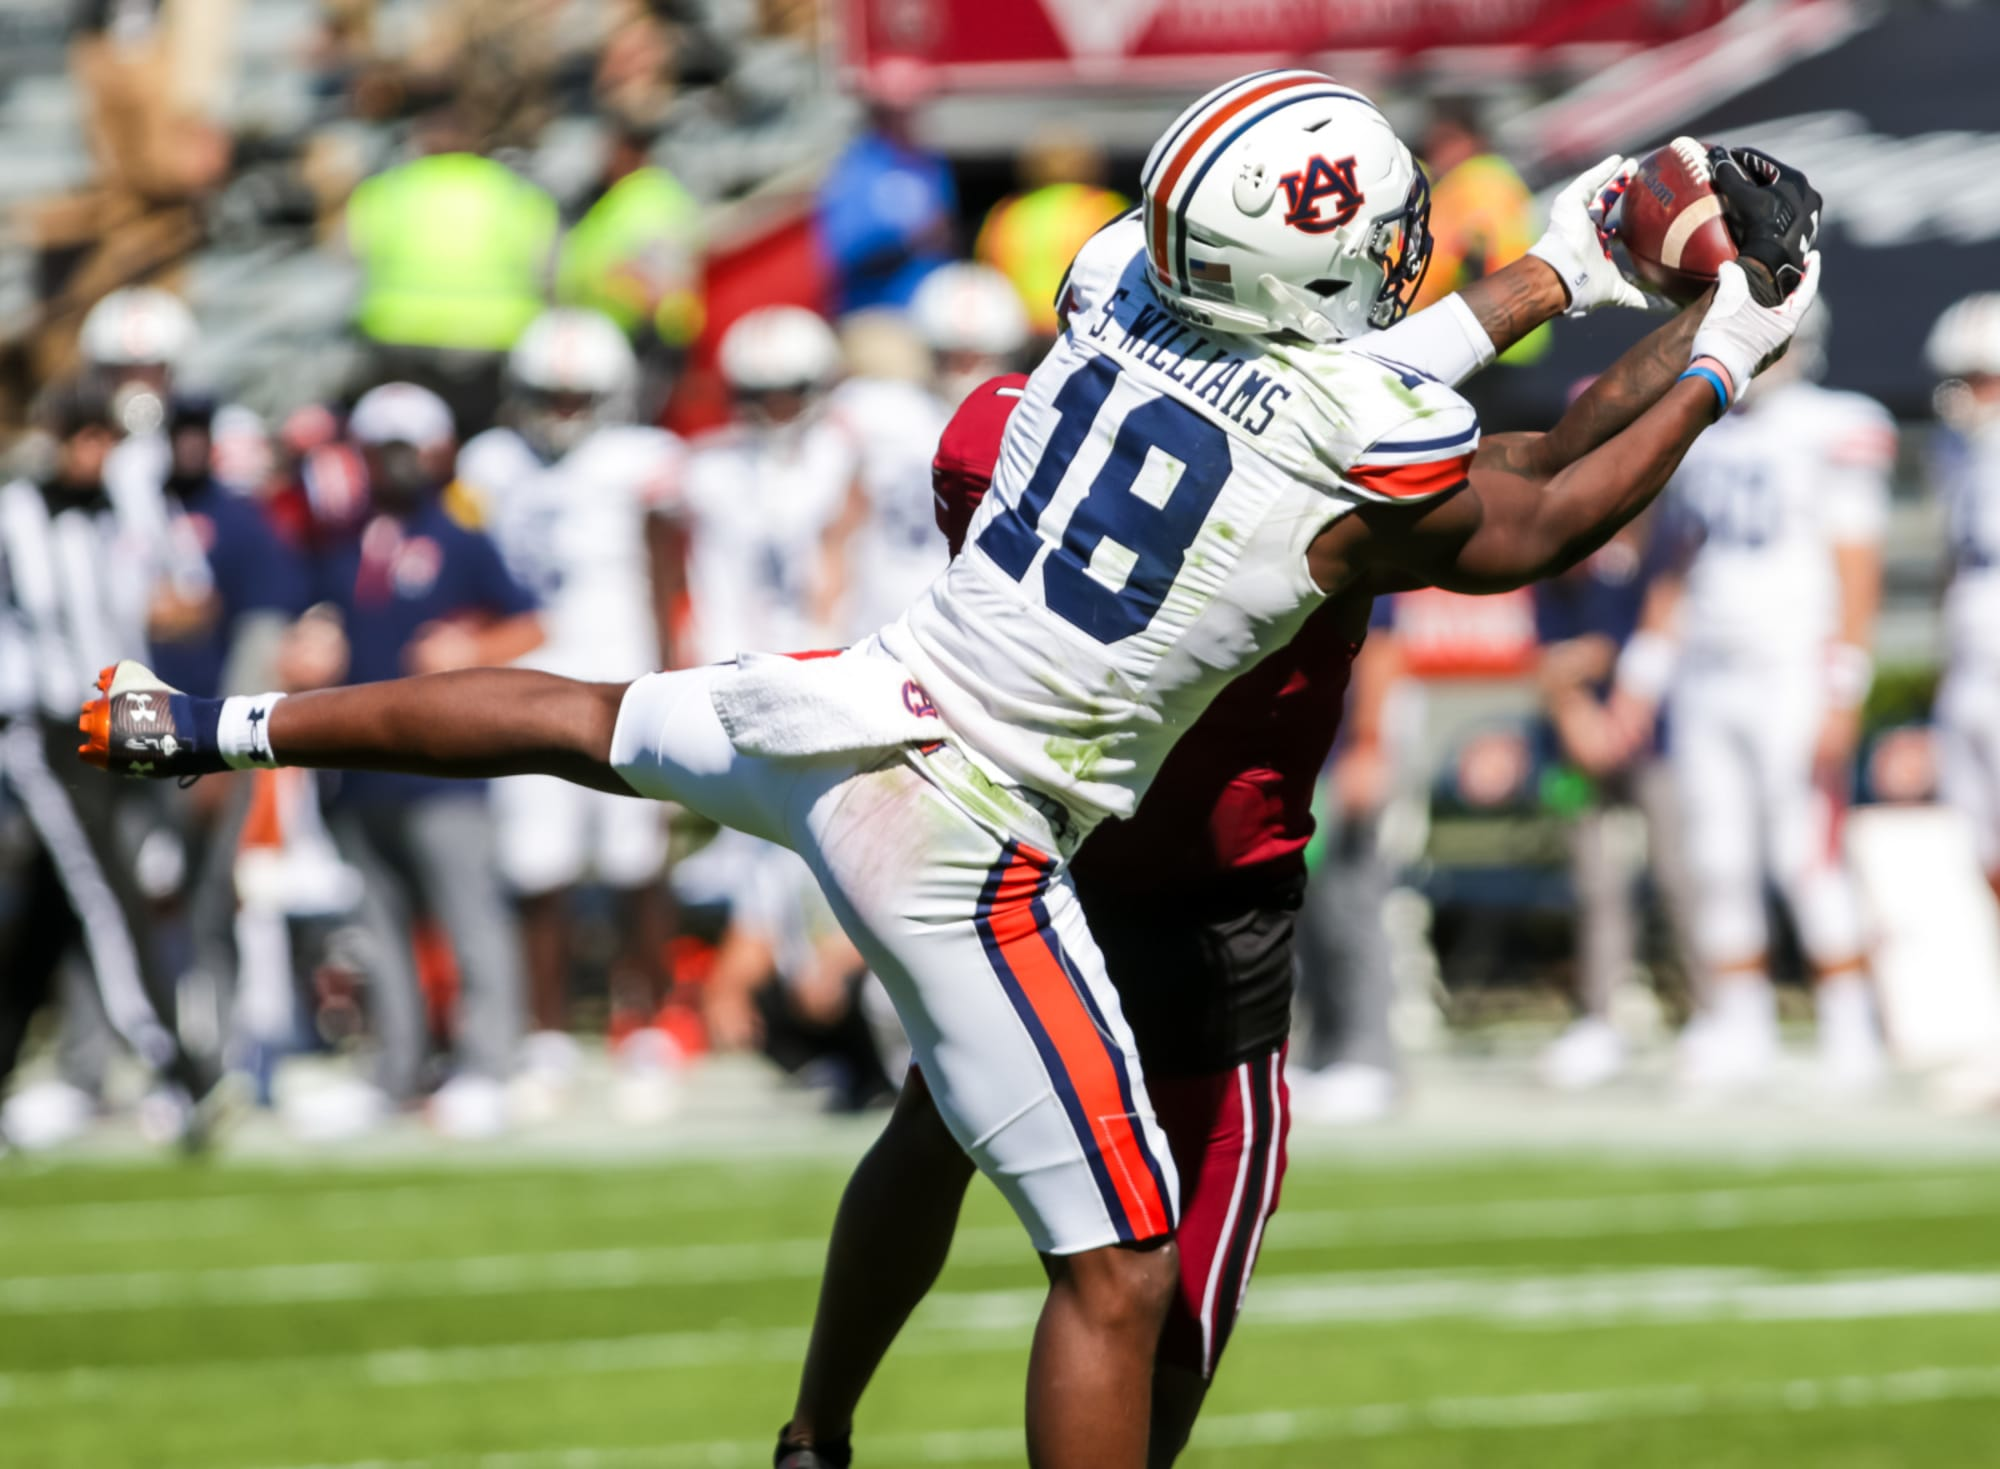 2021 NFL Draft spotlight: Receivers who will be Day 2 steals thumbnail